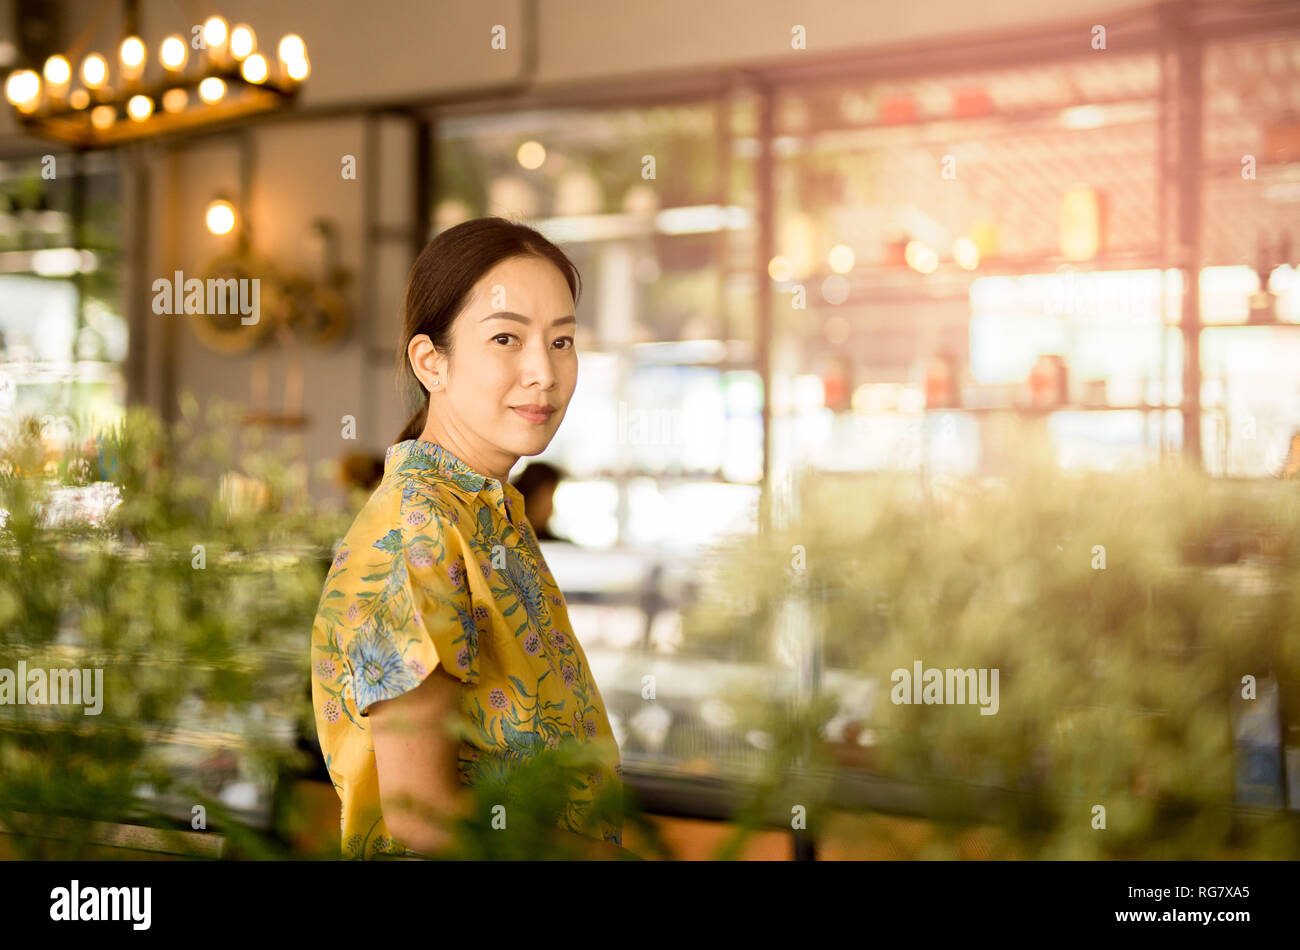 Beautiful middle aged Asian woman looking at camera in coffee shop. - Stock Image